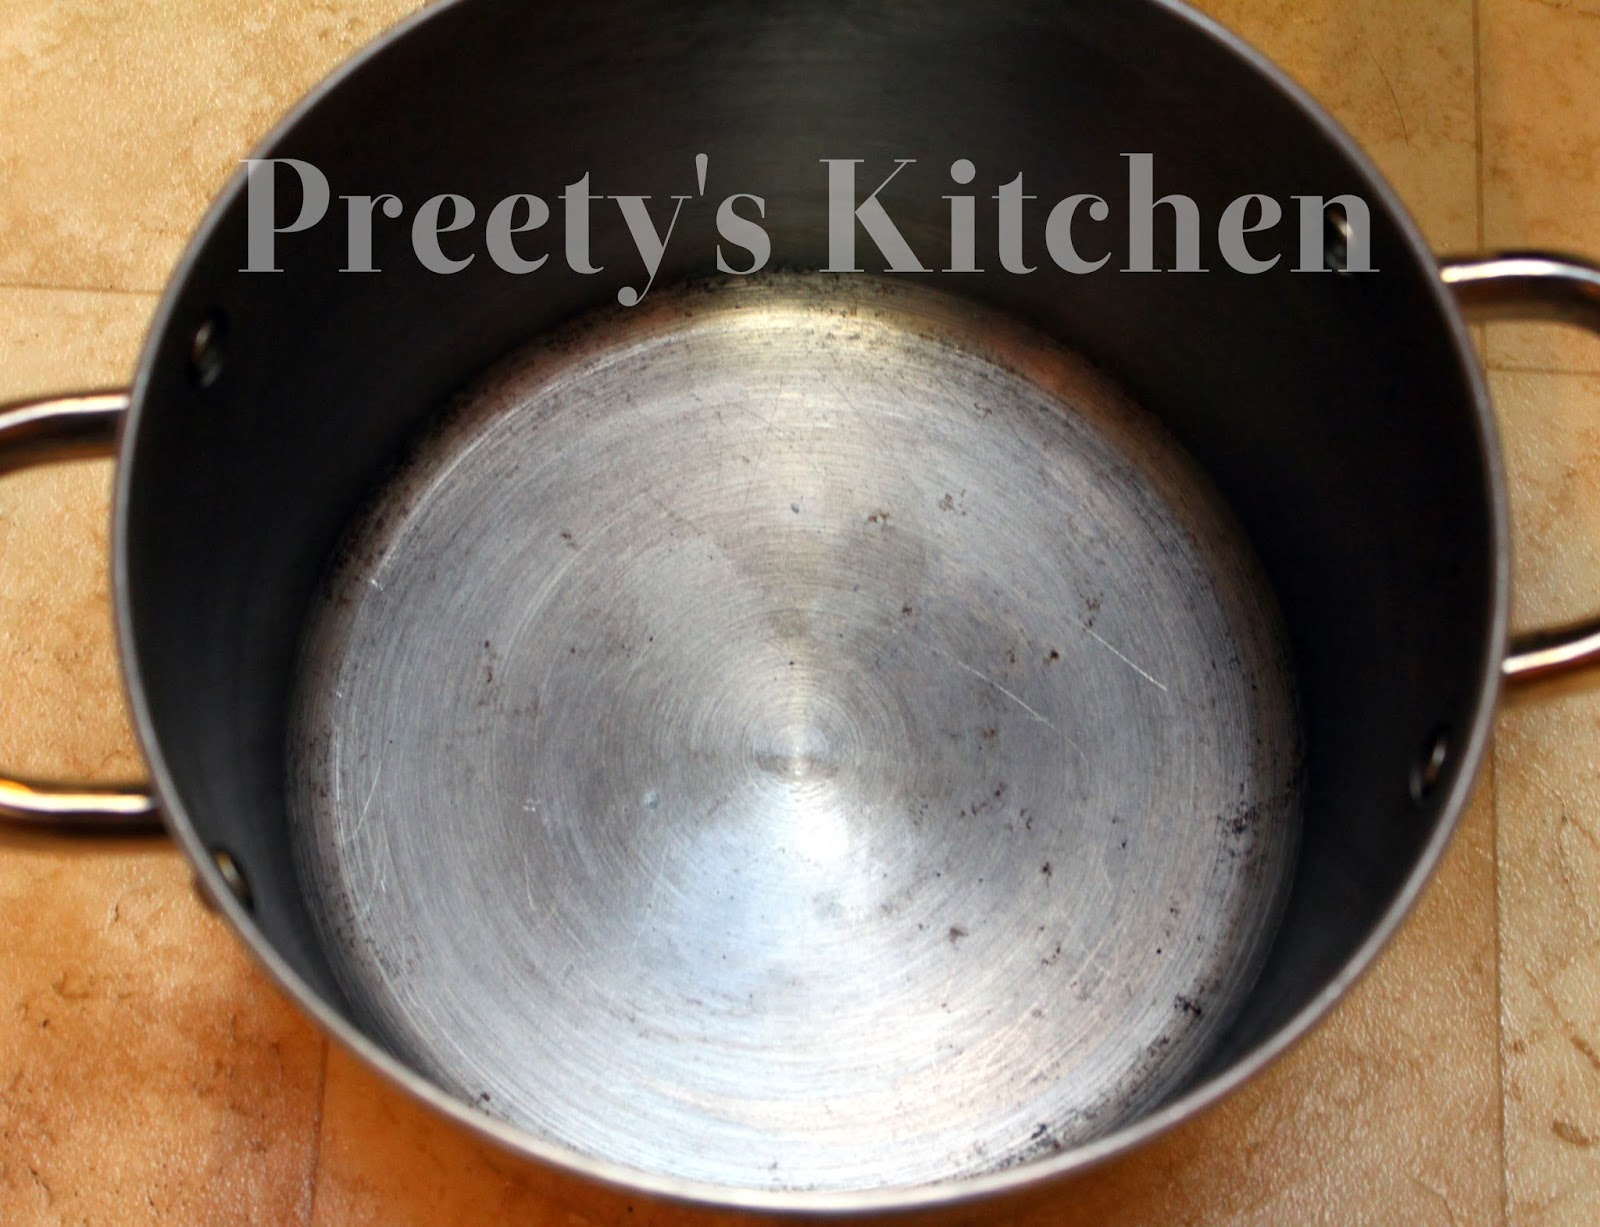 How to clean burnt pans with vinegar and baking soda home design ideas - Clean burnt pot lessminutes ...